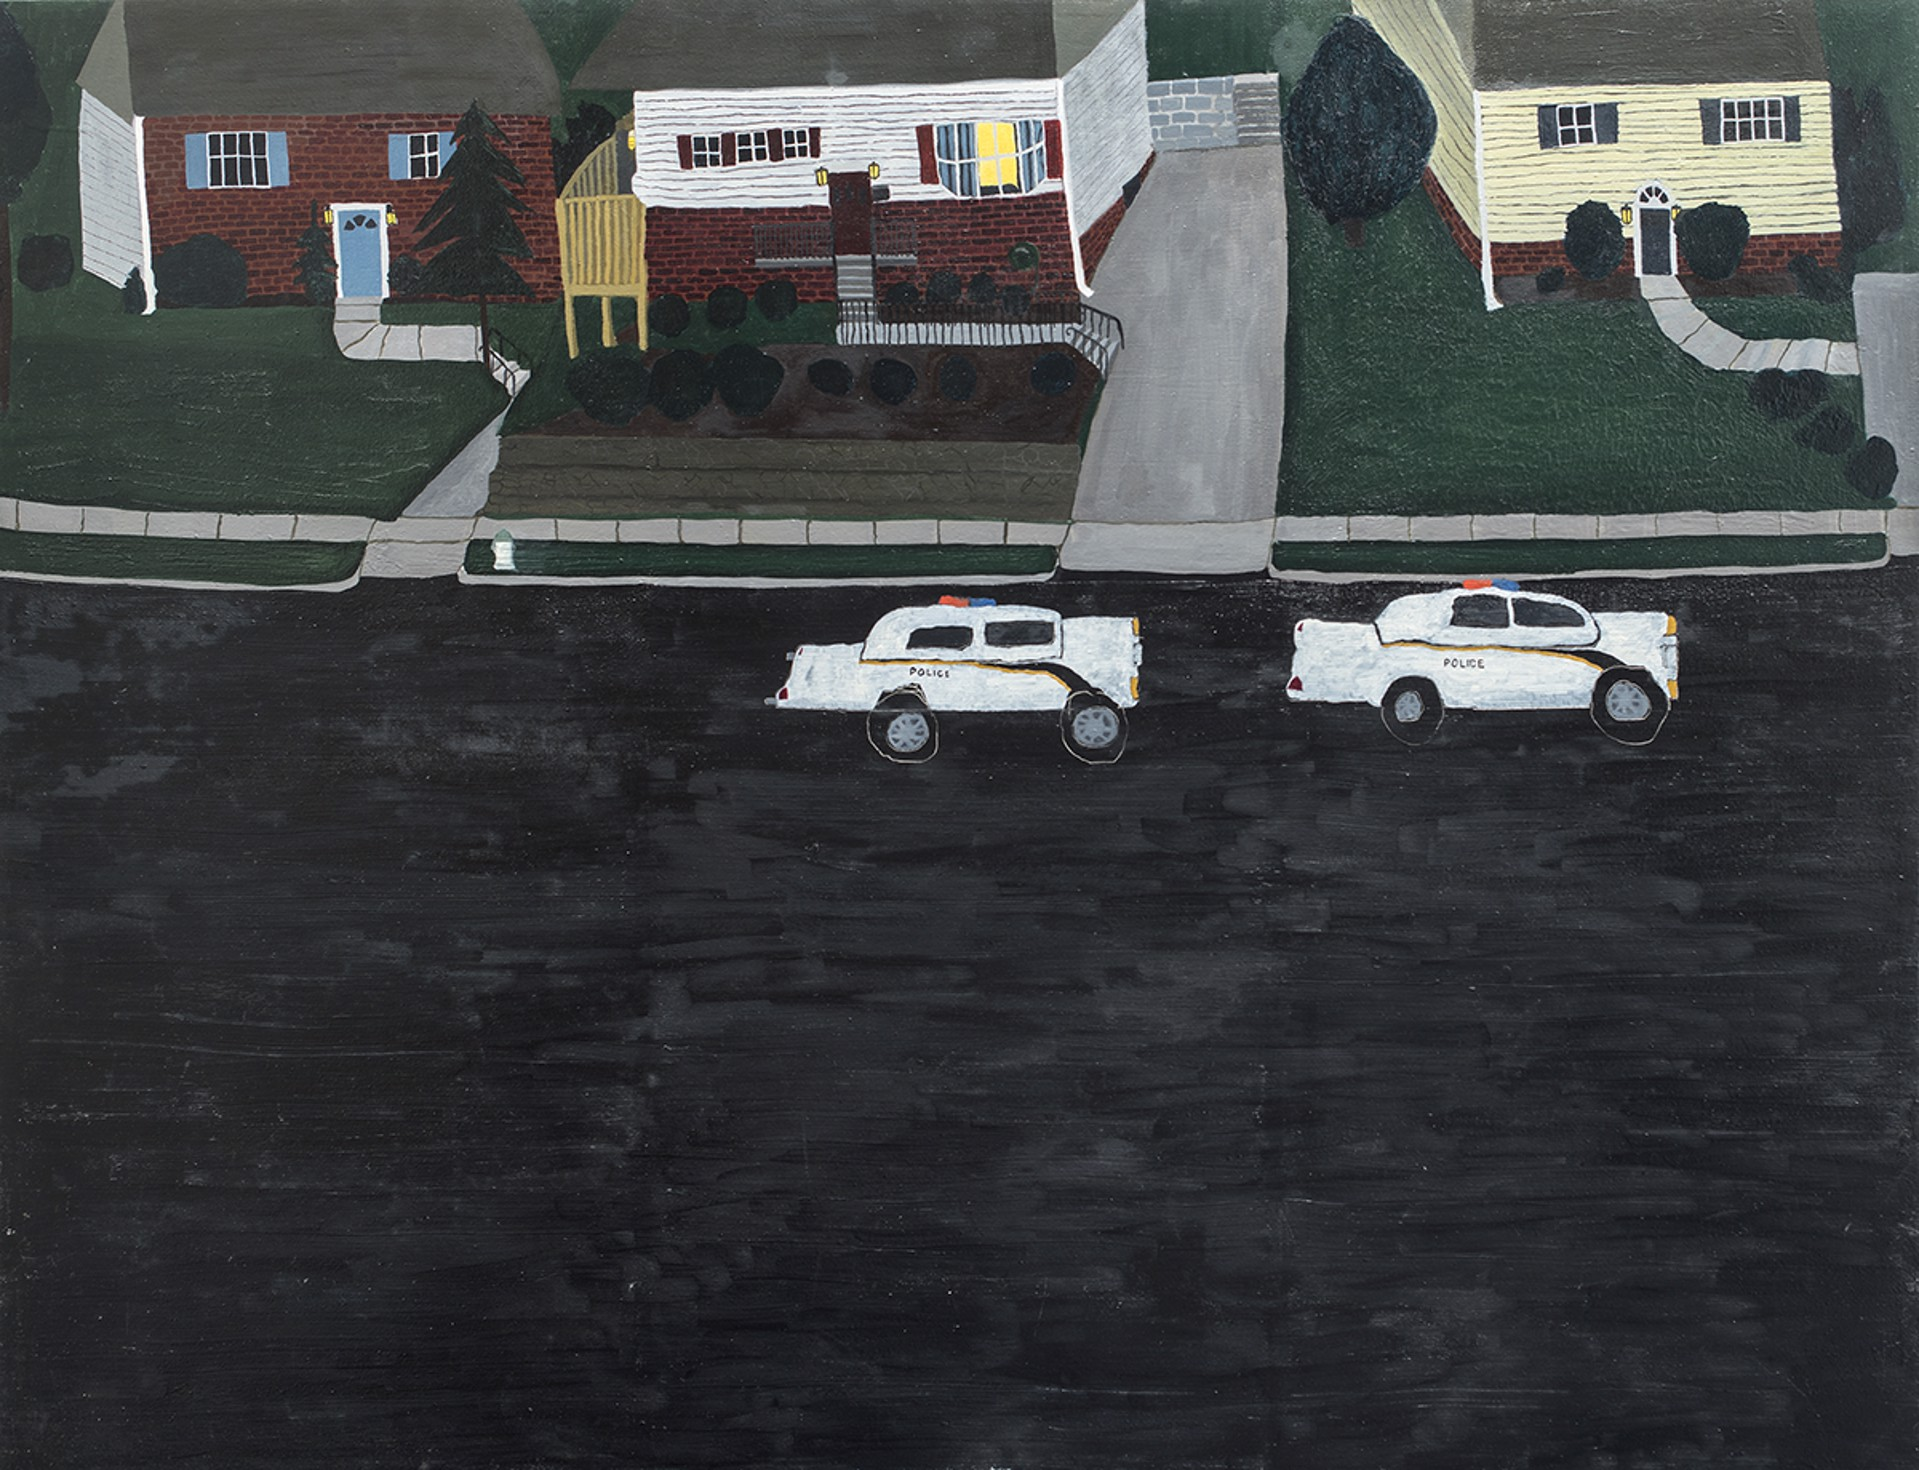 Aaron Maier-Carretero - branch drive by Visiting Artist